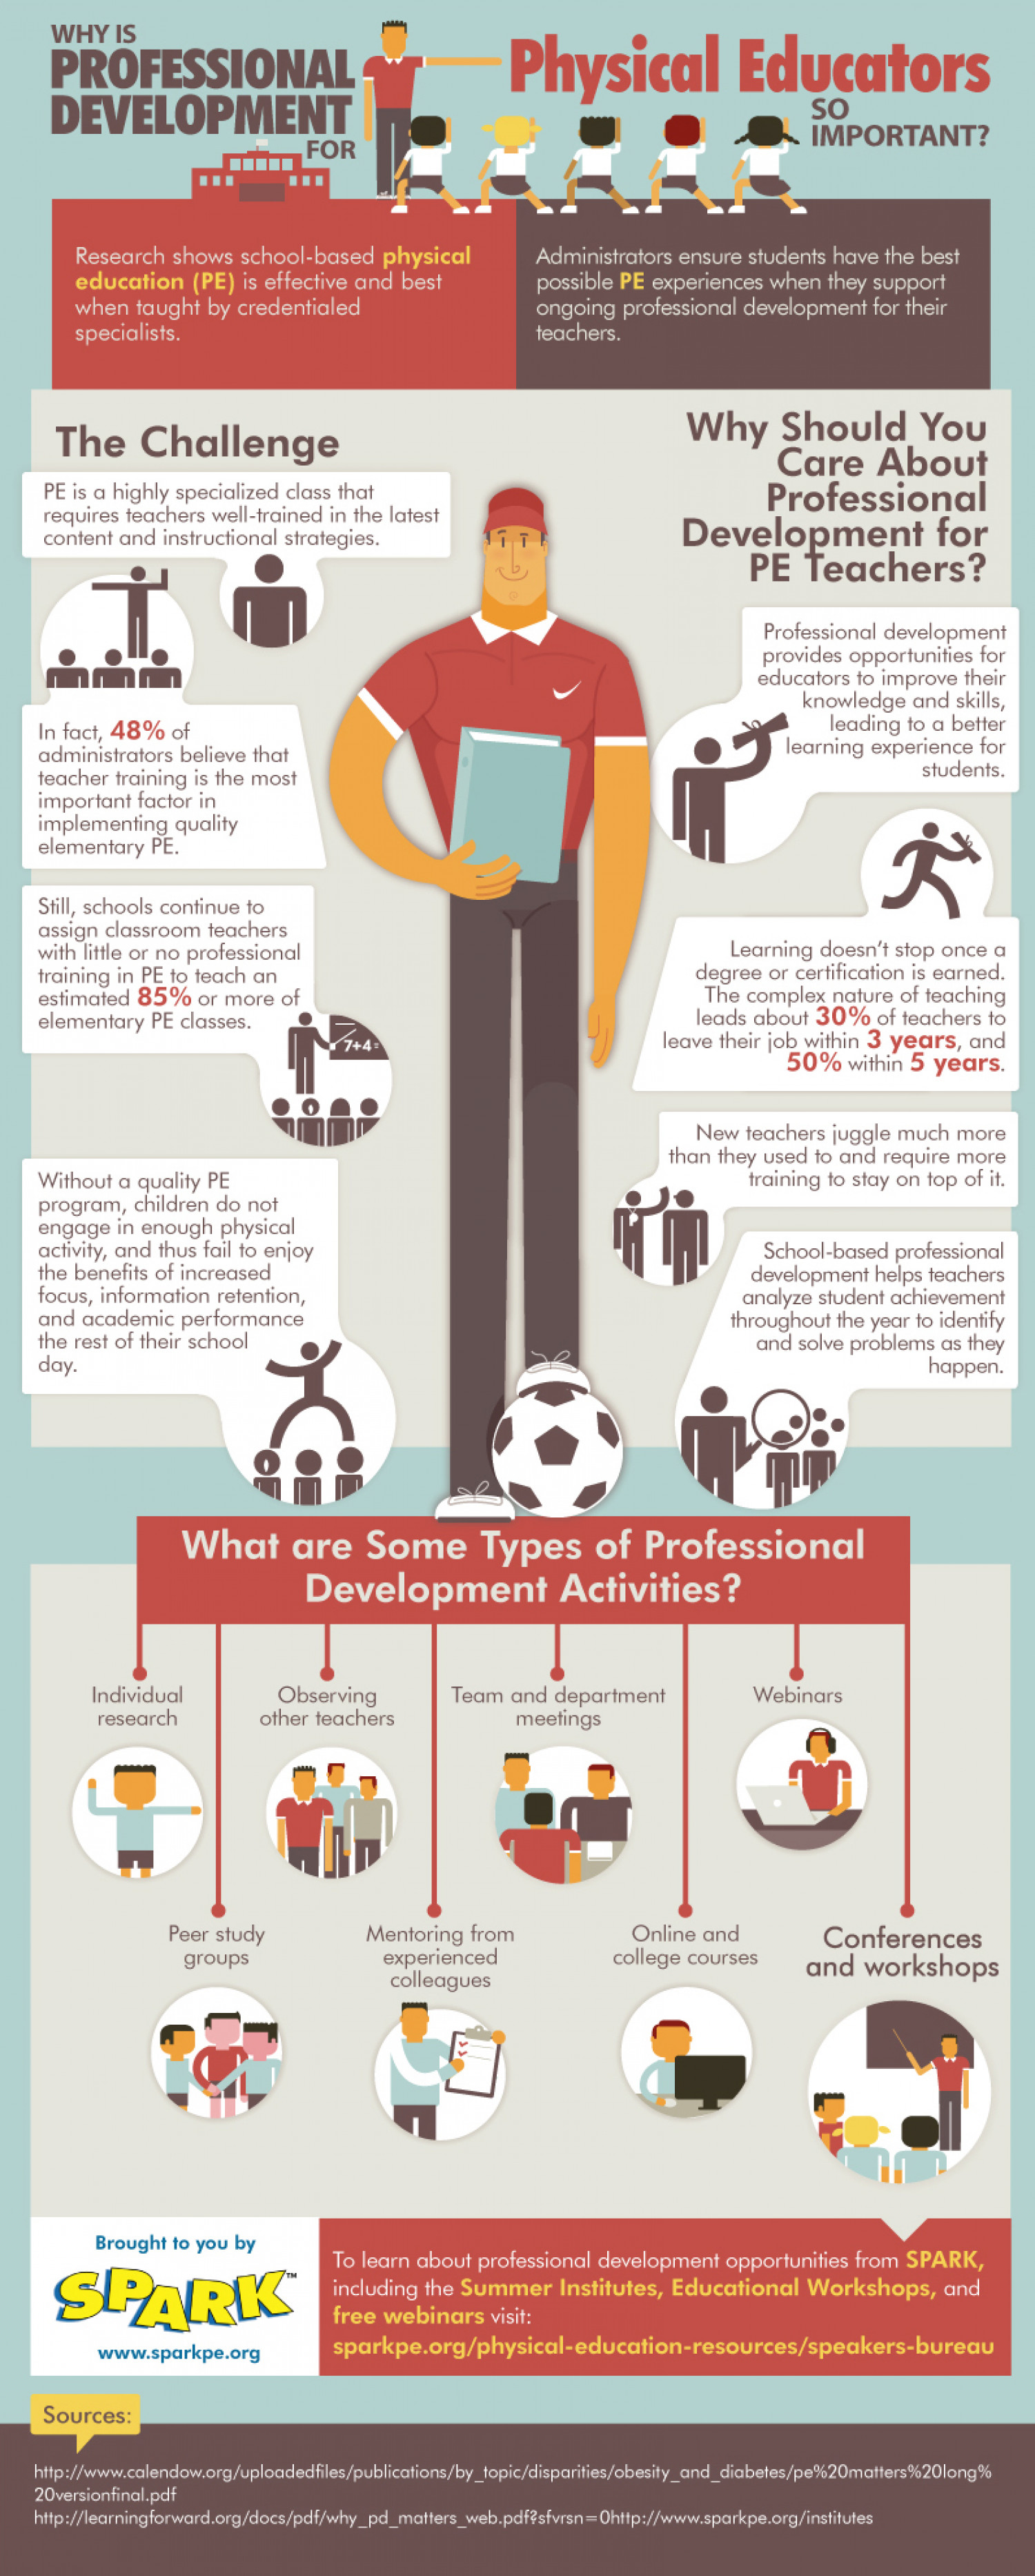 Why is Professional Development For Physical Educators So Important? Infographic